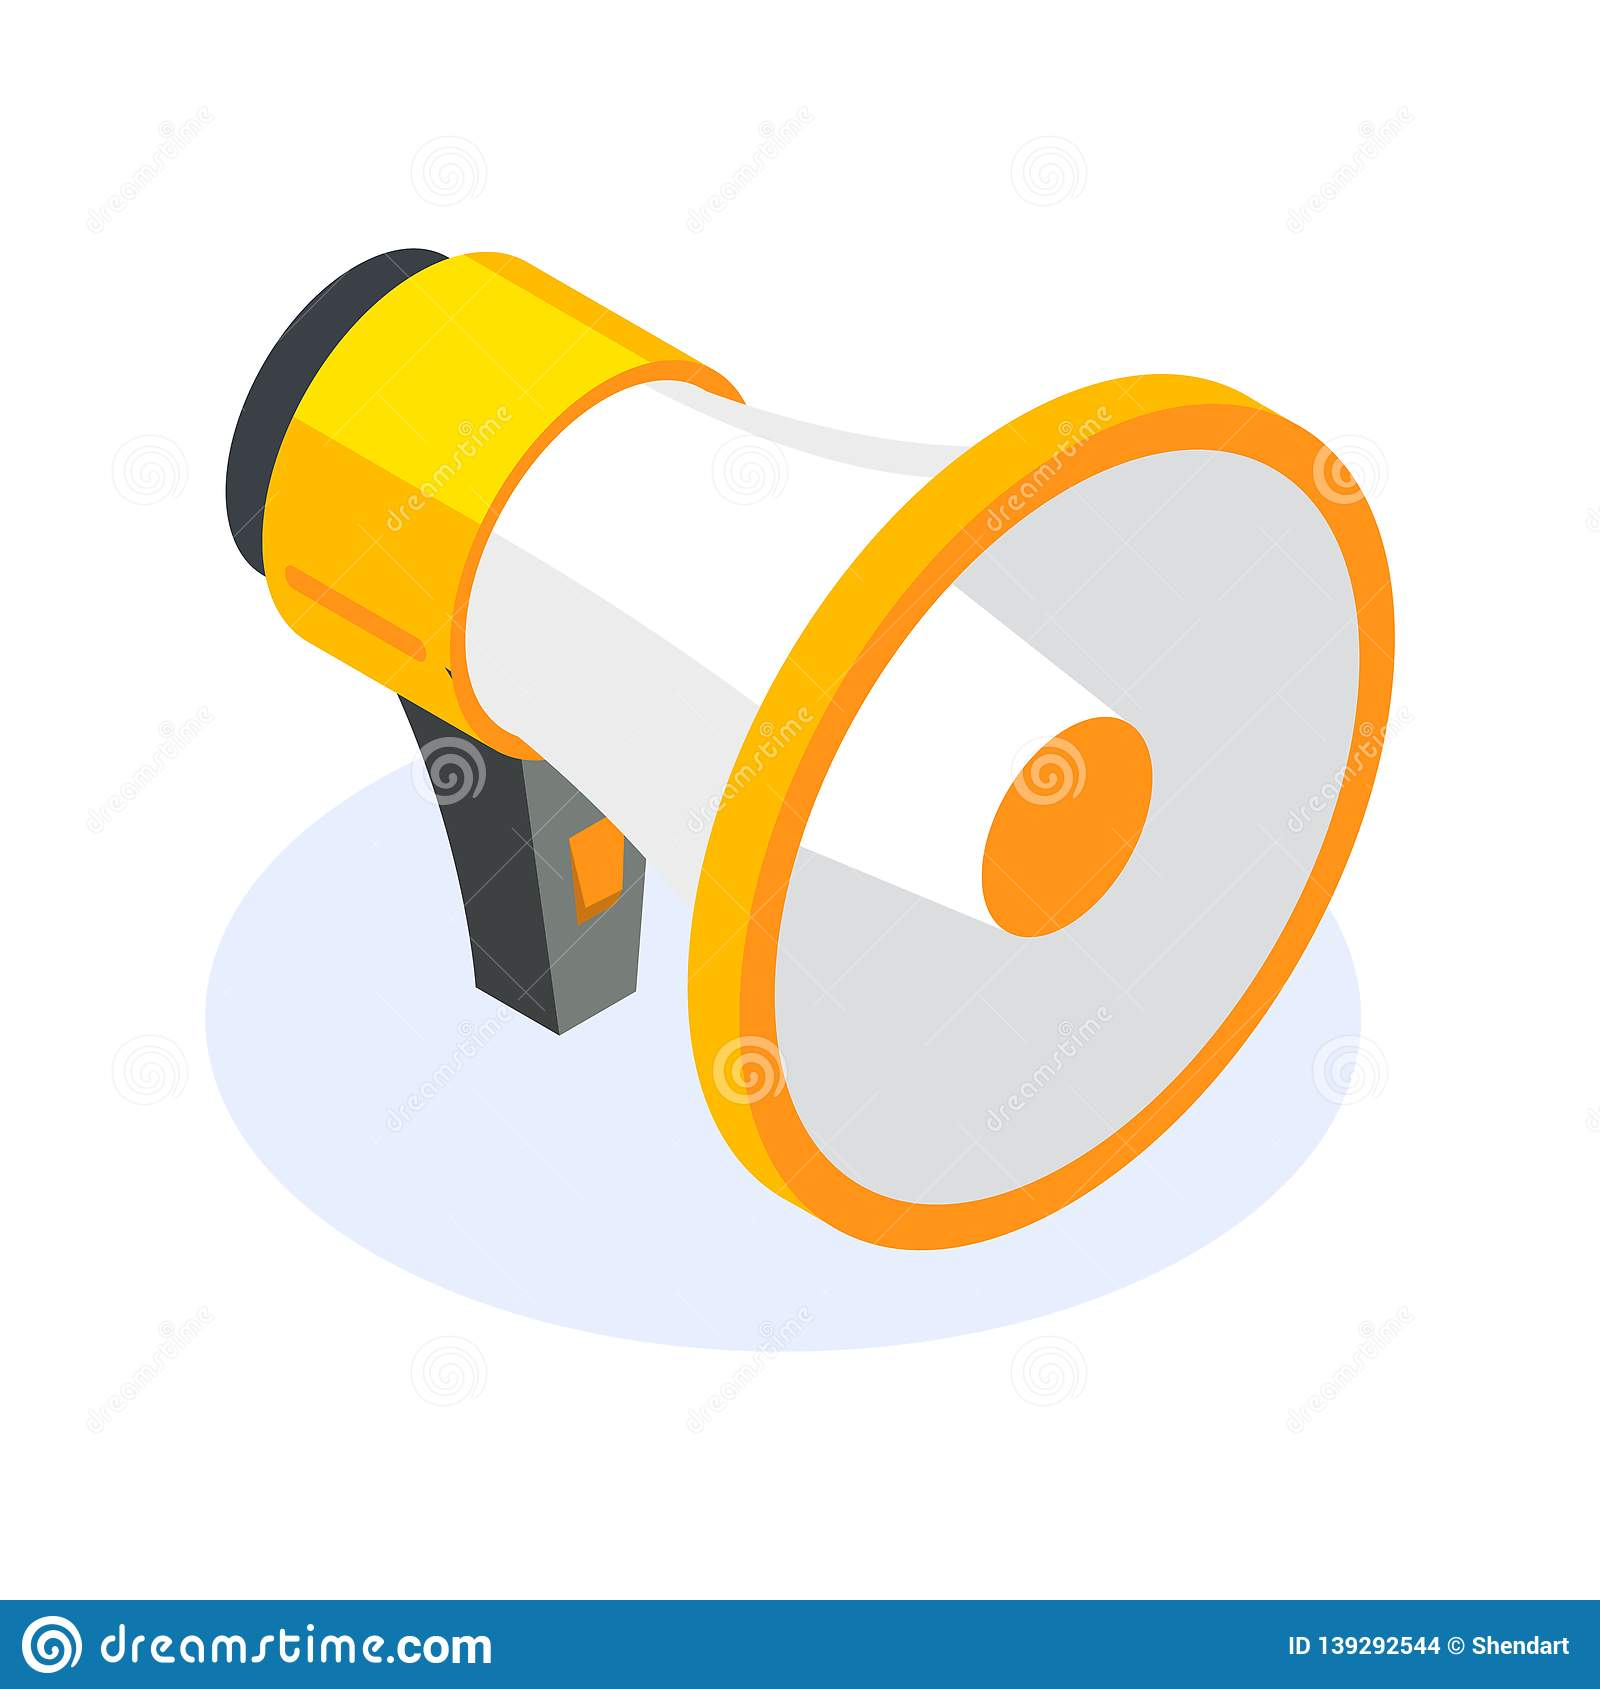 Isometric flat megaphone or speacker icon. Tool for reaching out to people at events. Can use for web banner